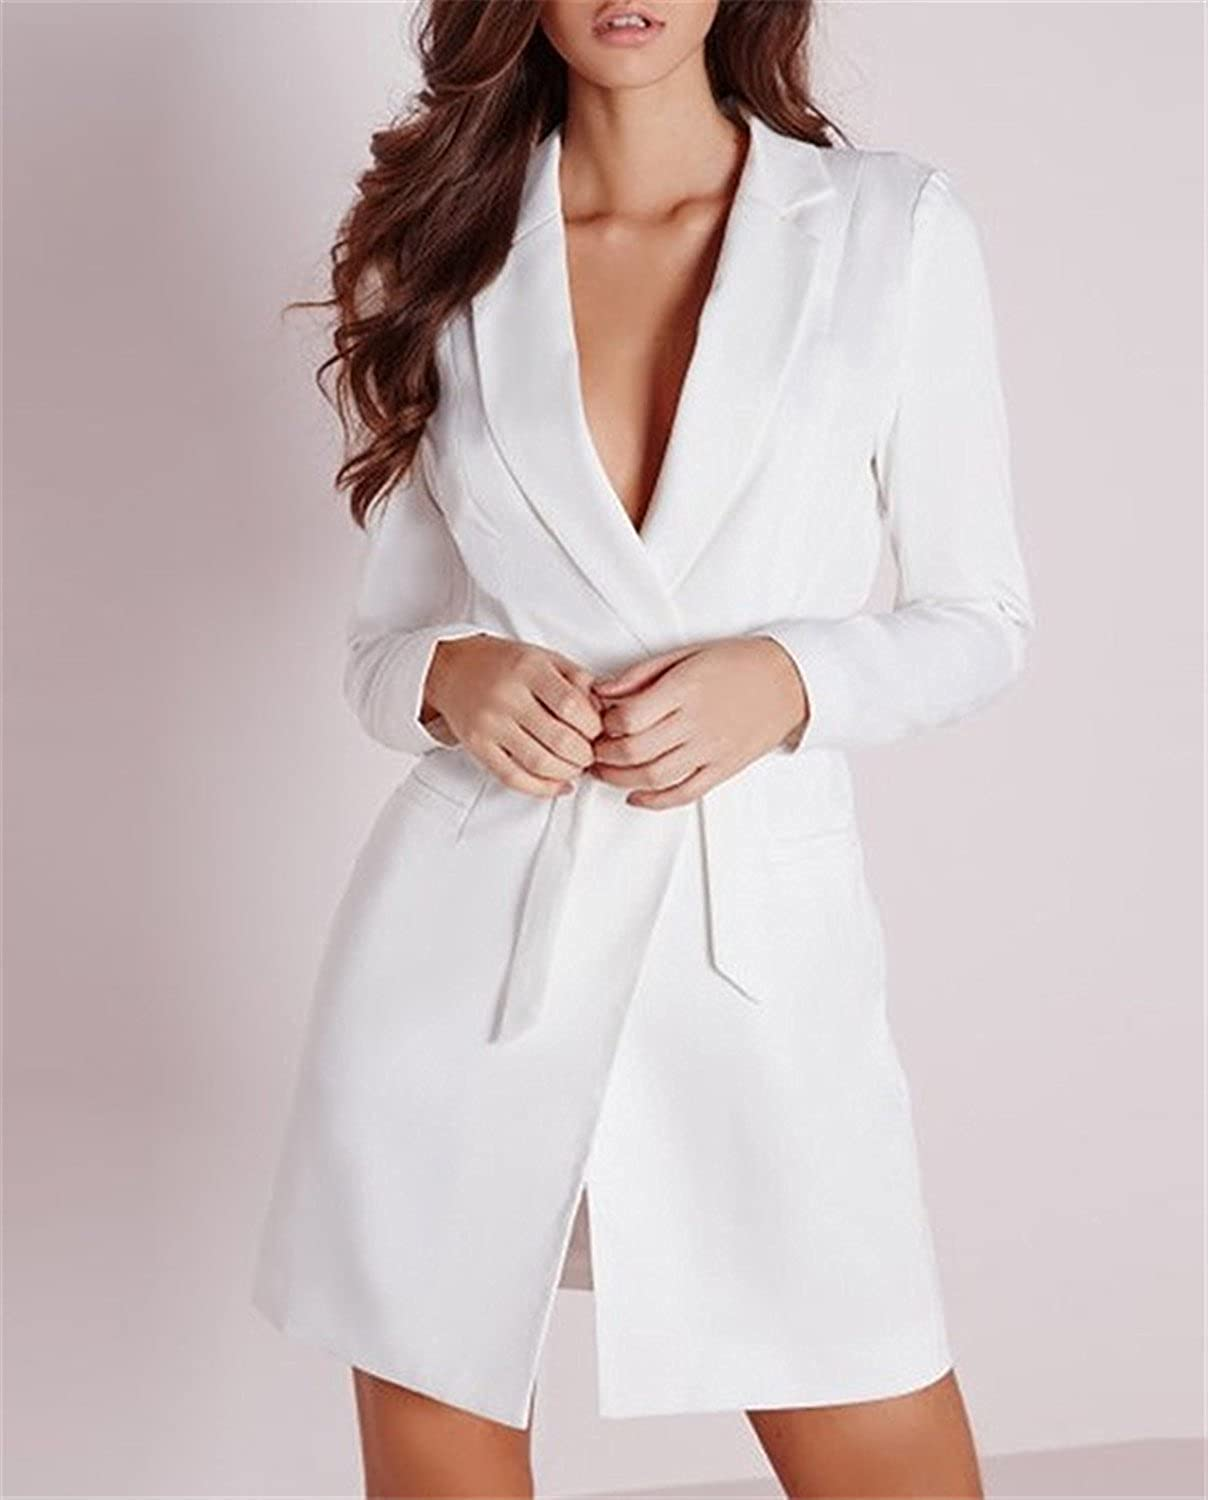 Shining4U Belted Deep V Neck Suit Dress Quality Long Sleeve Suit jacket Womens Blazer For Work White at Amazon Womens Clothing store: